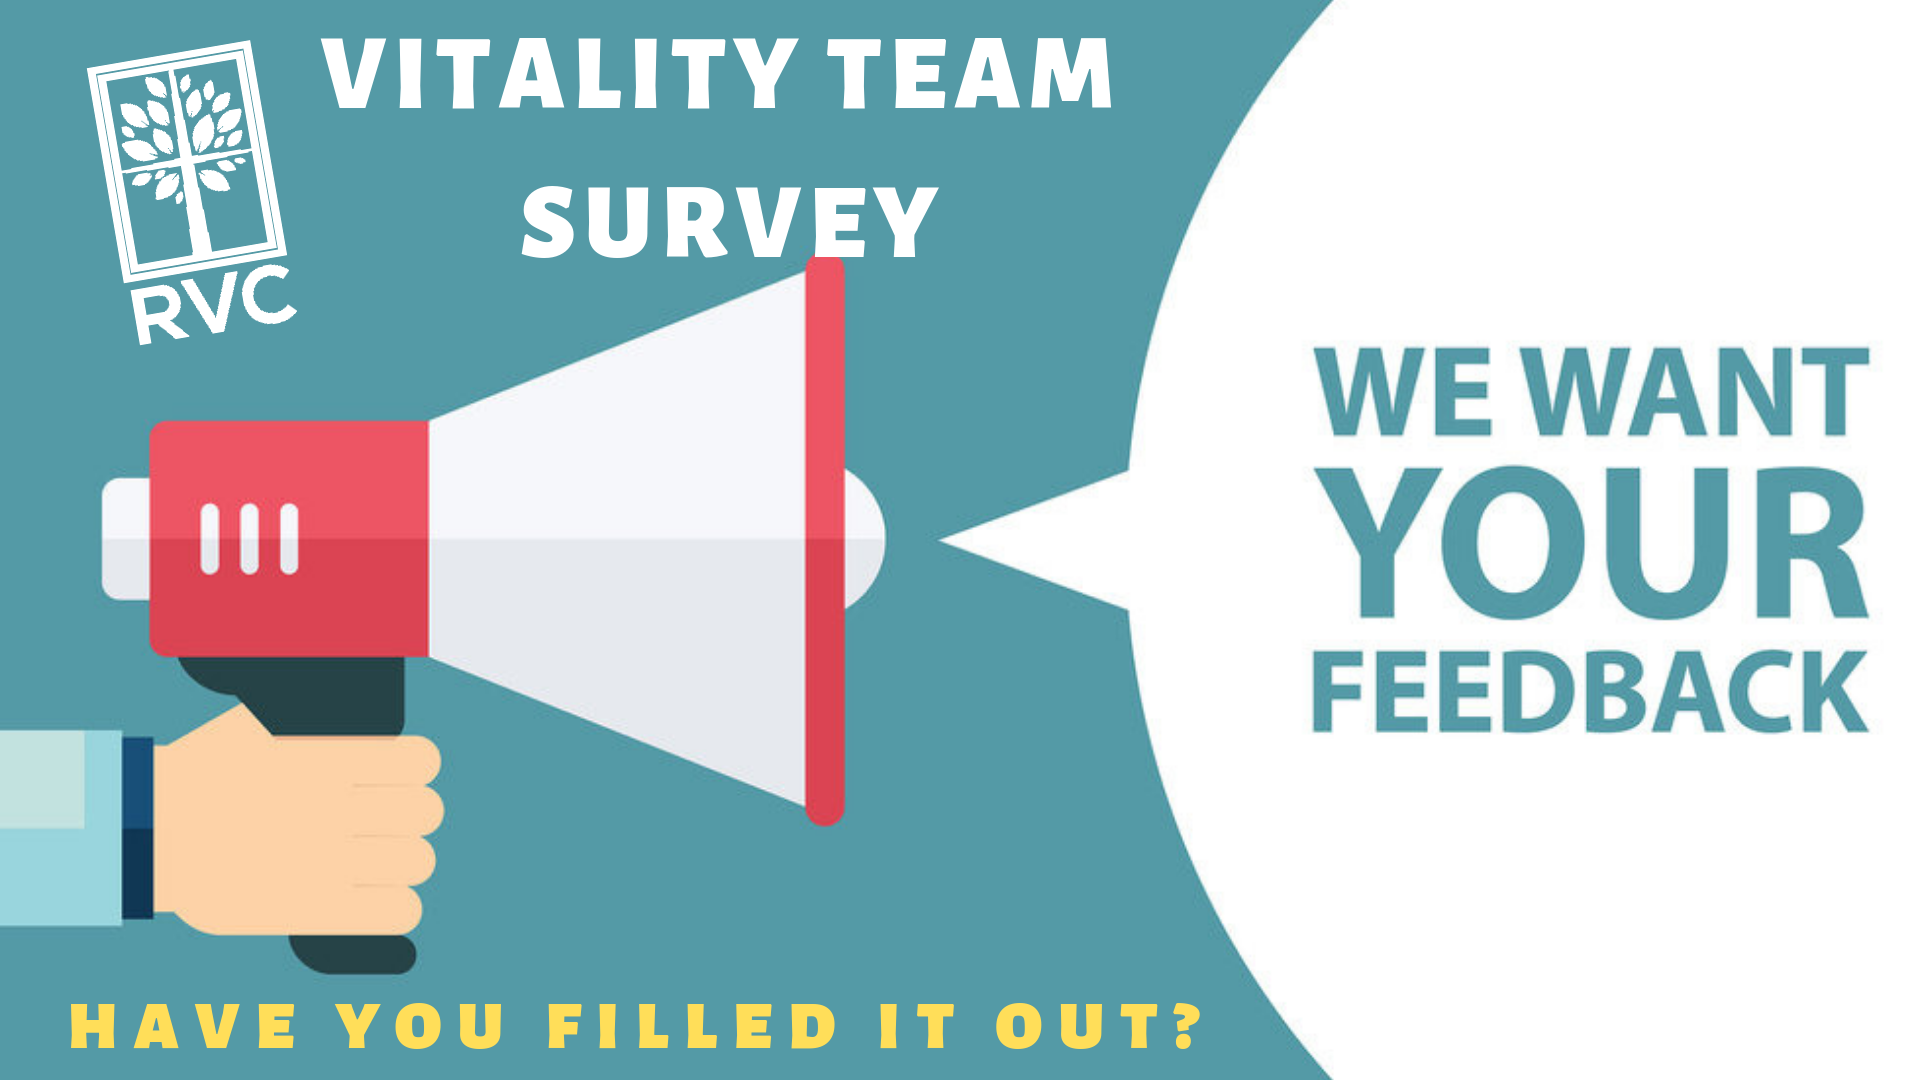 RVC VITALITY TEAM SURVEY (1).png